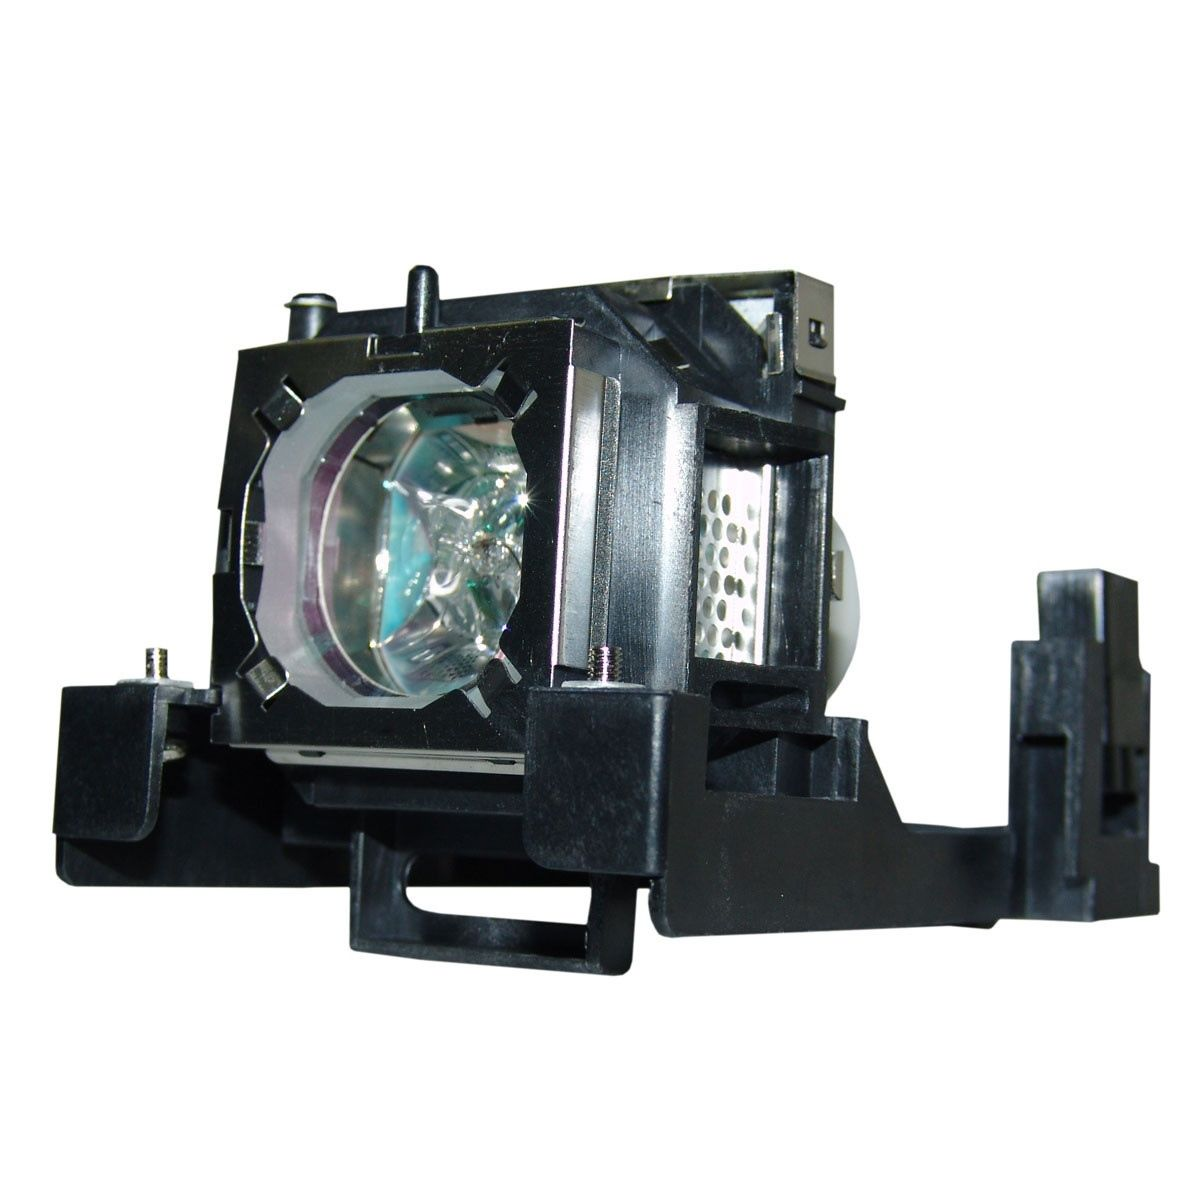 projector Lamp Bulb ET-LAT100 ETLAT100 LAT100 for Panasonic PT-TW230 PT-TW231R PT-TW230EA PT-TW231REA with housing projector lamp bulb et la701 etla701 for panasonic pt l711nt pt l711x pt l501e with housing